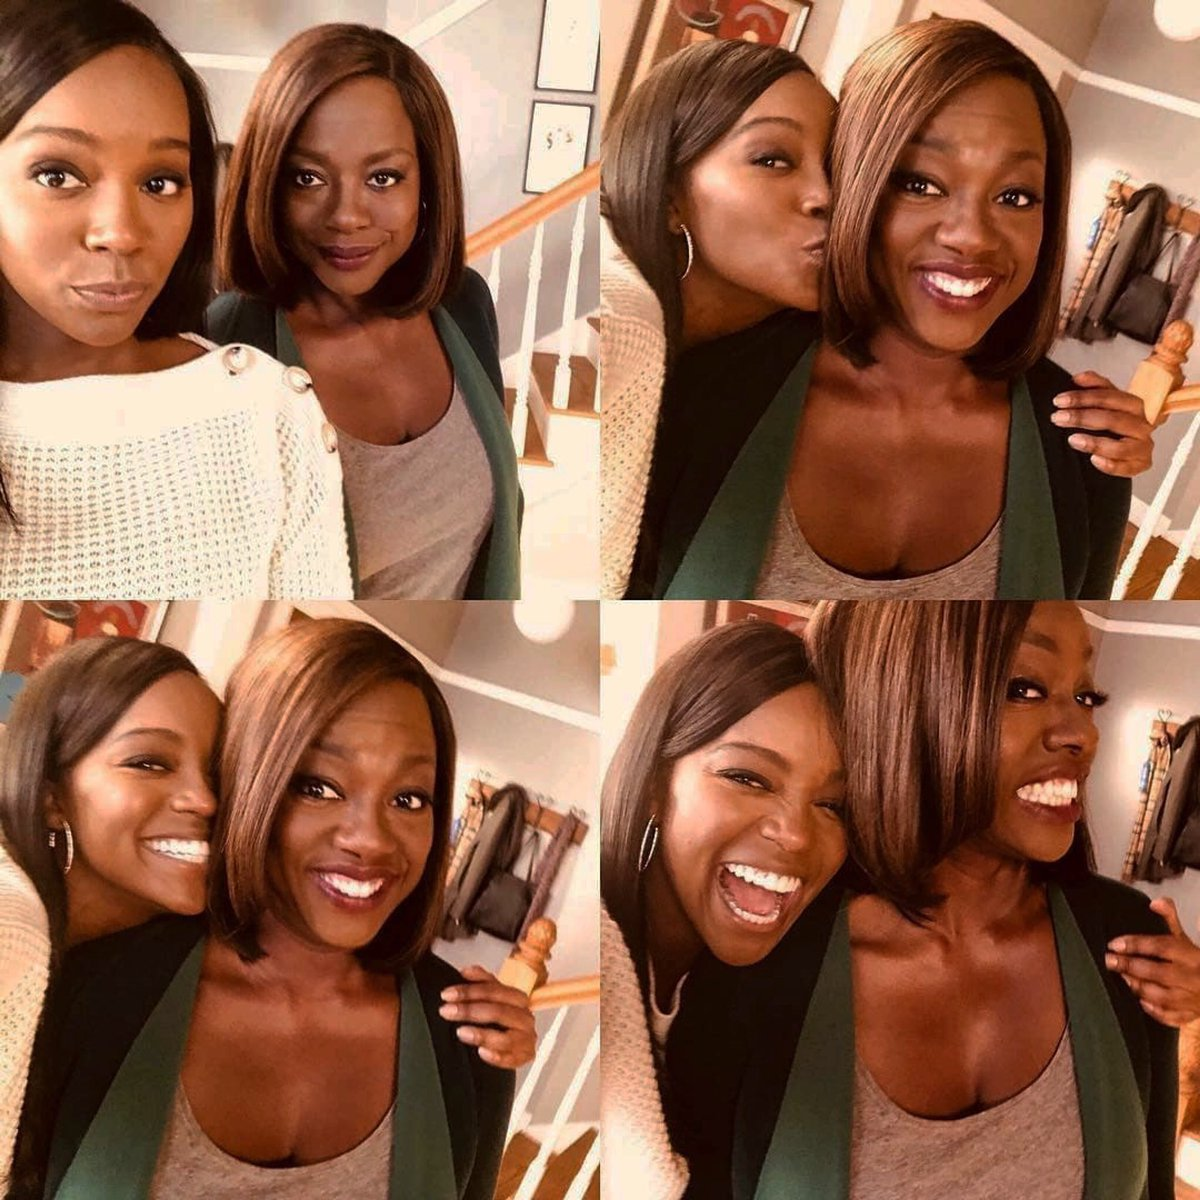 Don't miss it! #HTGAWM  tonight!!! In an alternate reality, a young law student meets her legal mentor and they become best friends and protect the innocent!!! ...J/K that's not happening  <br>http://pic.twitter.com/J5eEbrAs5p